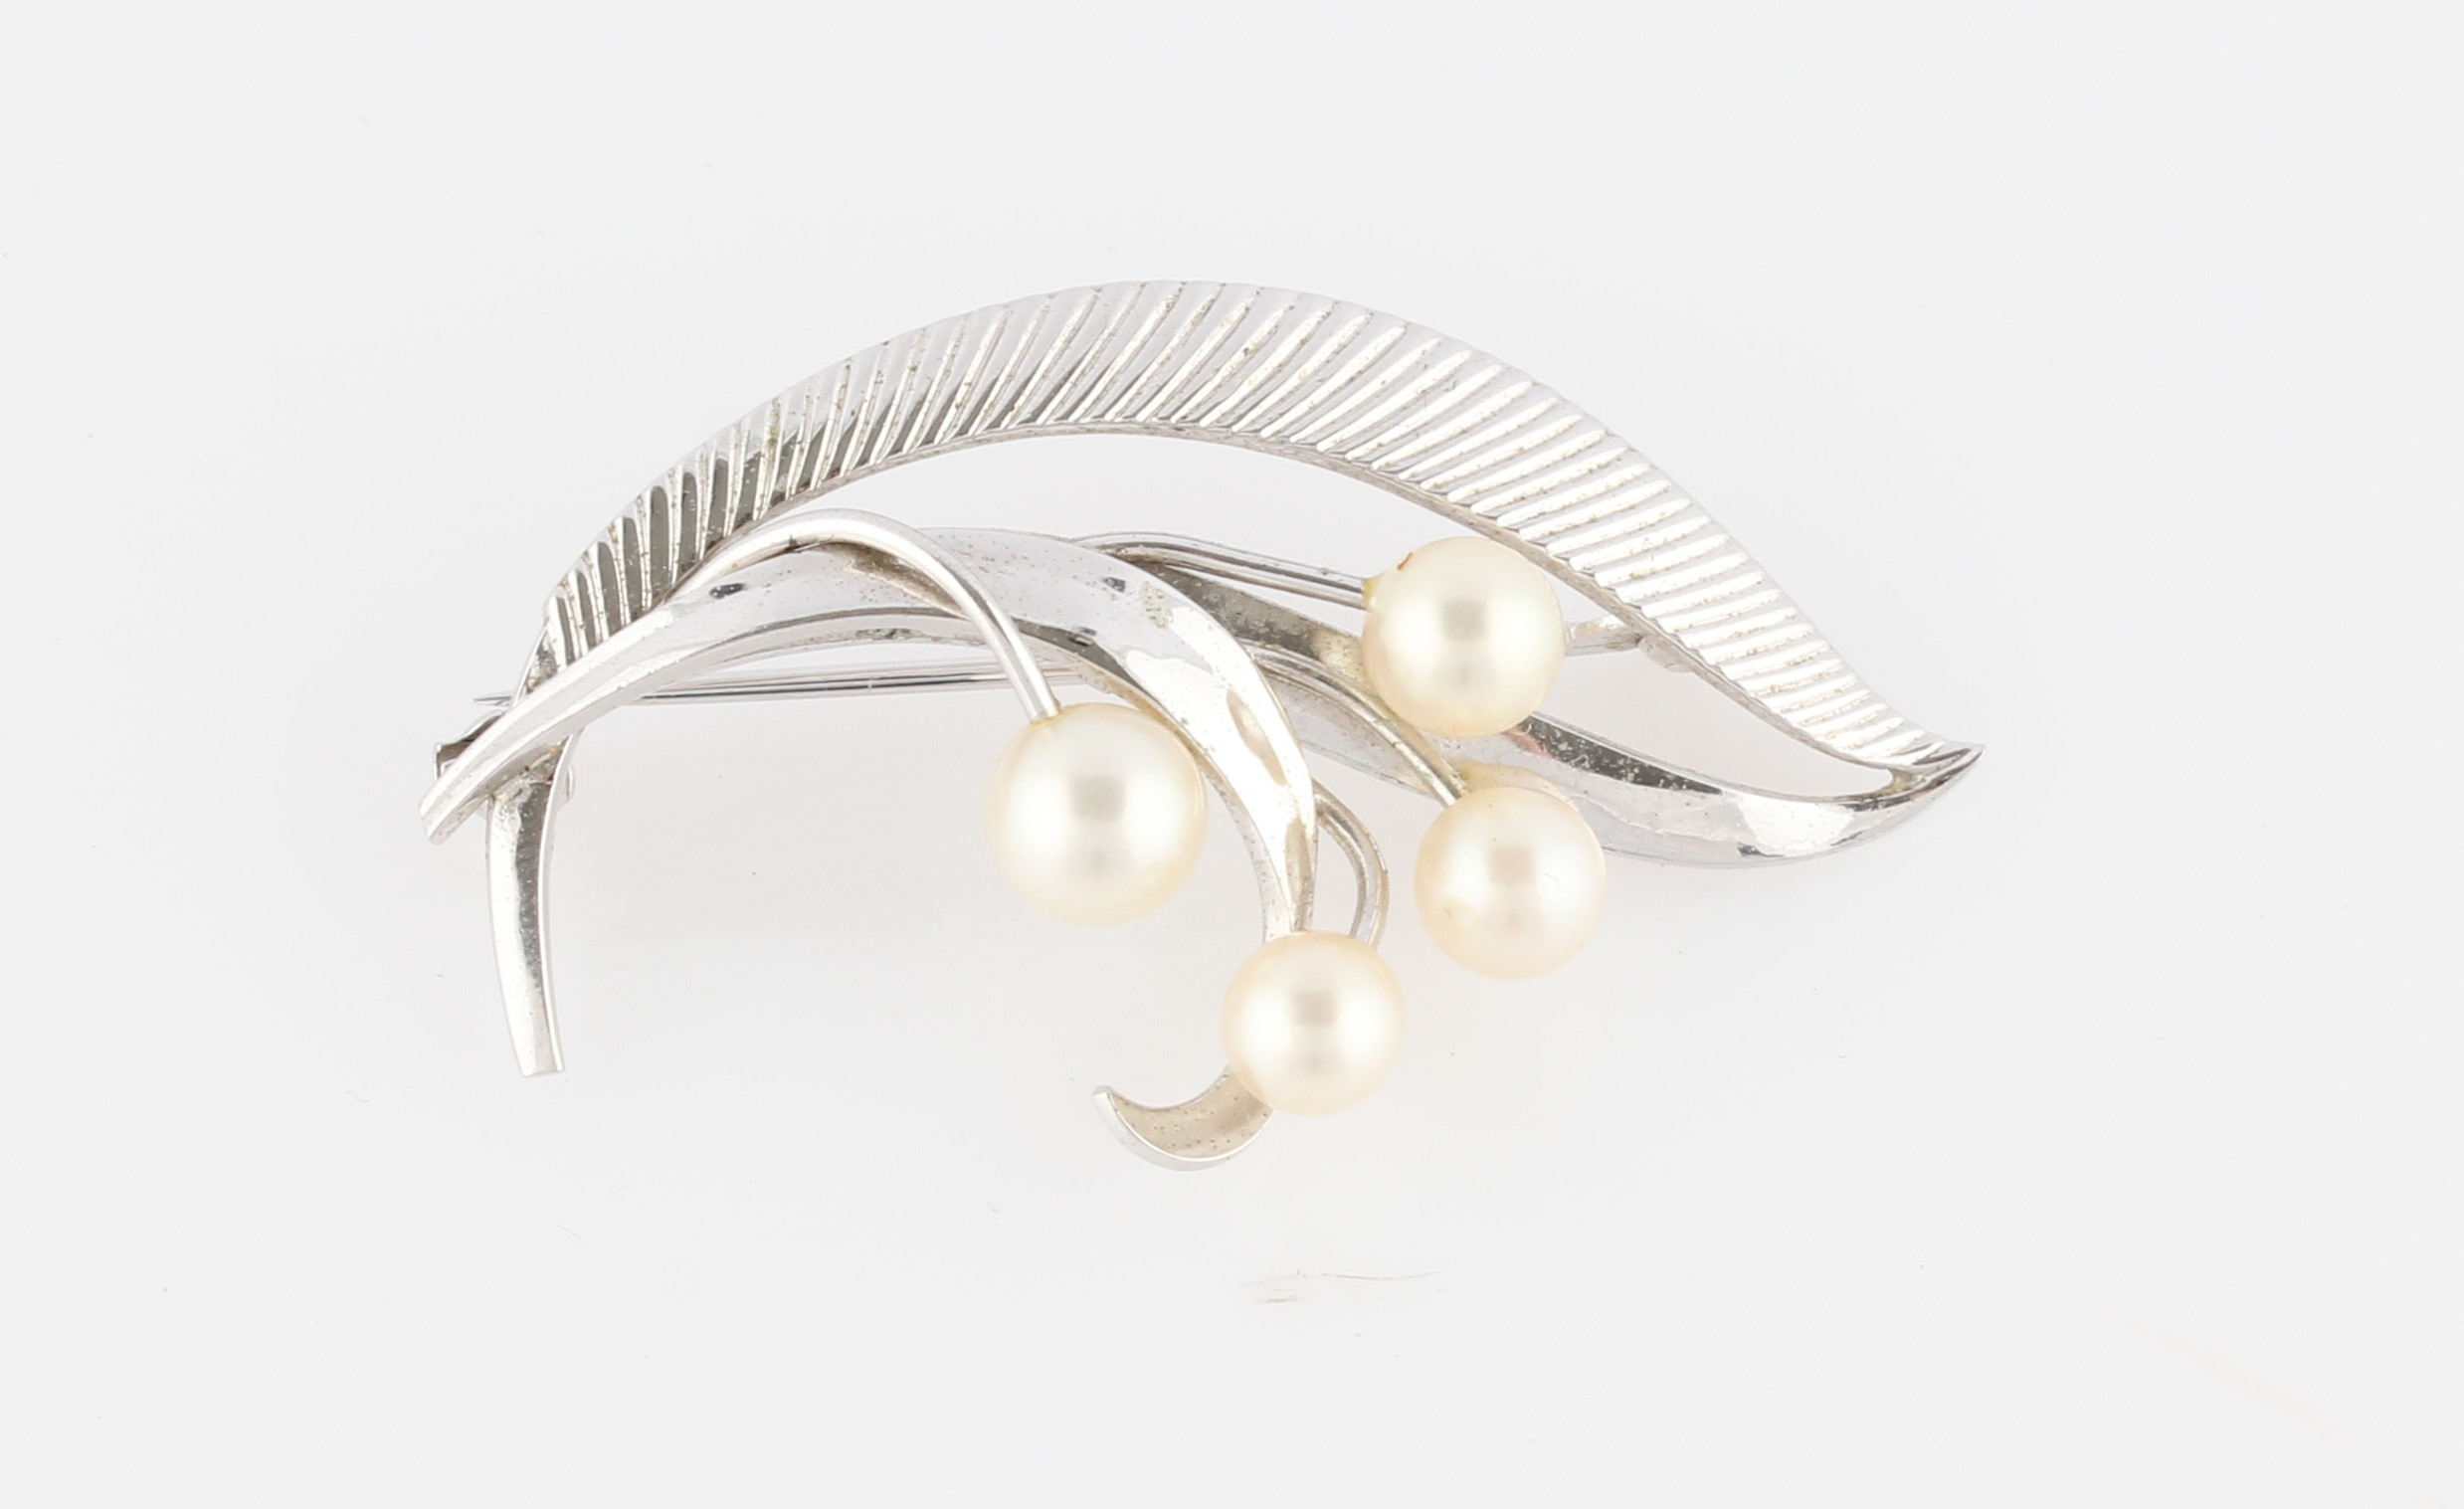 Lot 21 - A Mikimoto pearl brooch, set with four variously sized pearls, smallest measuring approx. 5mm and